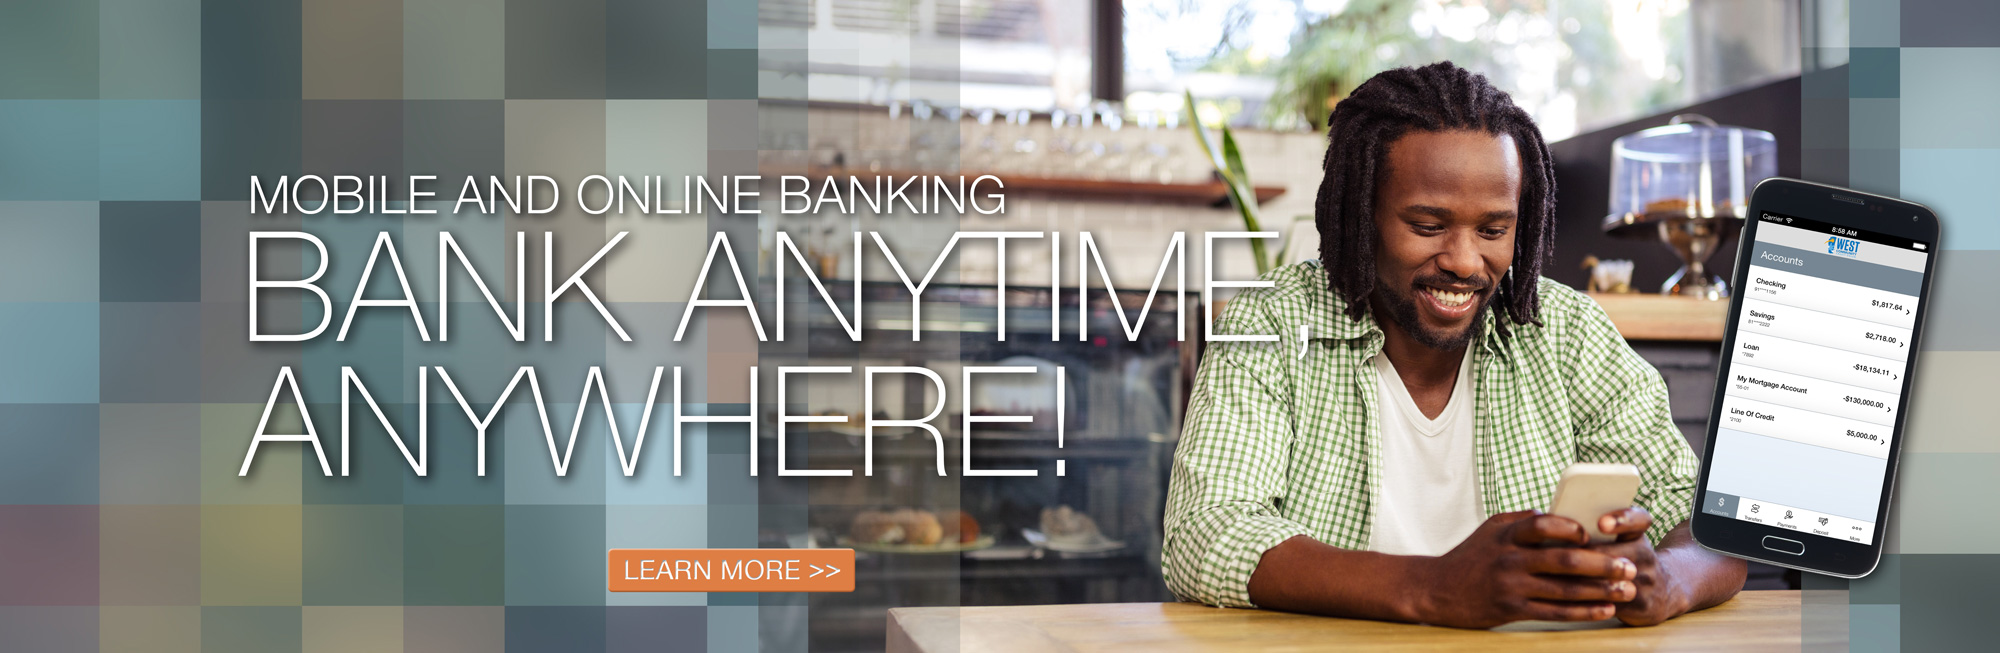 Bank anytime, anywhere with mobile and online banking. Click for details.